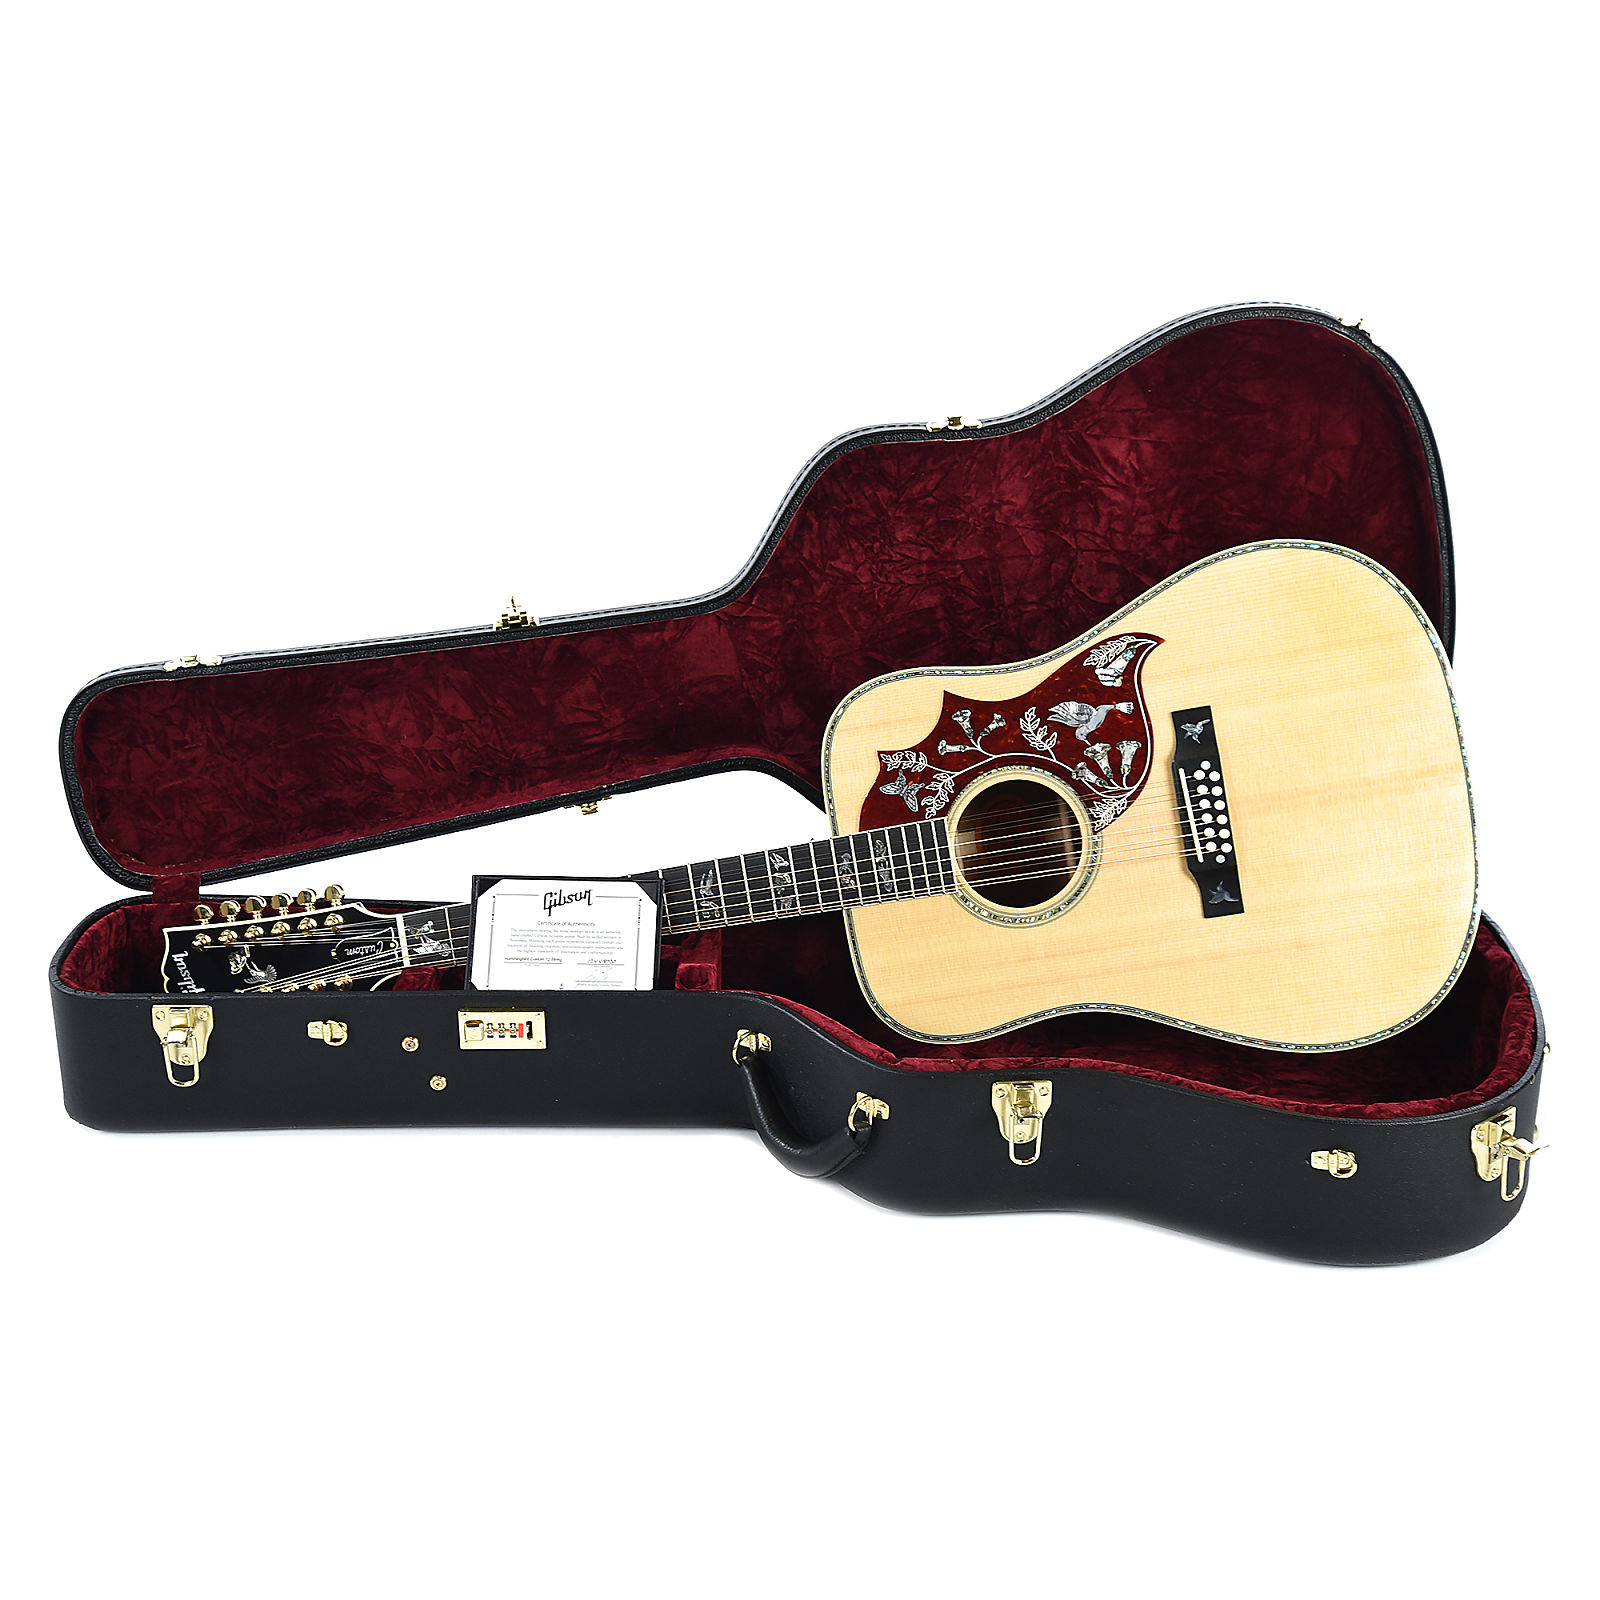 Acoustic Electric Guitars Musical Instruments & Gear Gibson J-29 Mint Montana Rosewood Acoustic-electric Guitar Antique Natural Skilful Manufacture